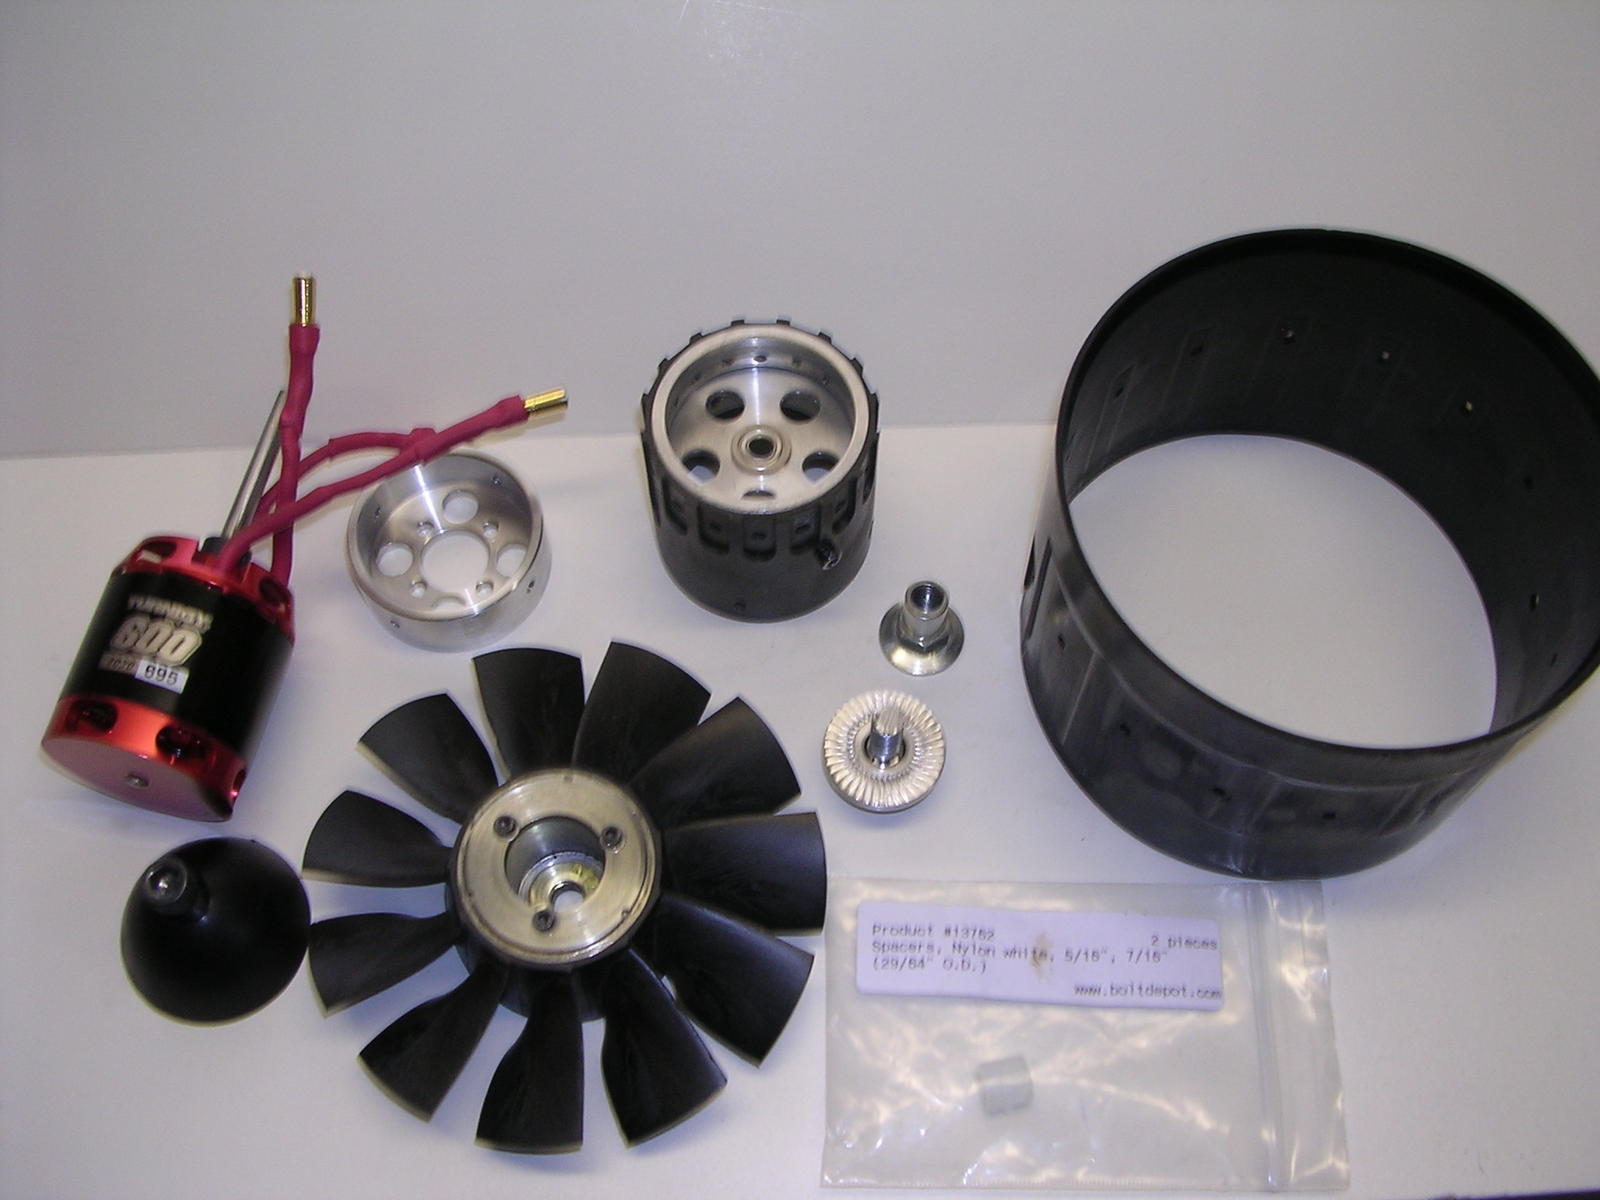 Name: DSCN0099.jpg Views: 344 Size: 122.6 KB Description: All the goodies. Plastic bag contains special order nylon bushing for fan hub. Zero play in fan/adapter mating.